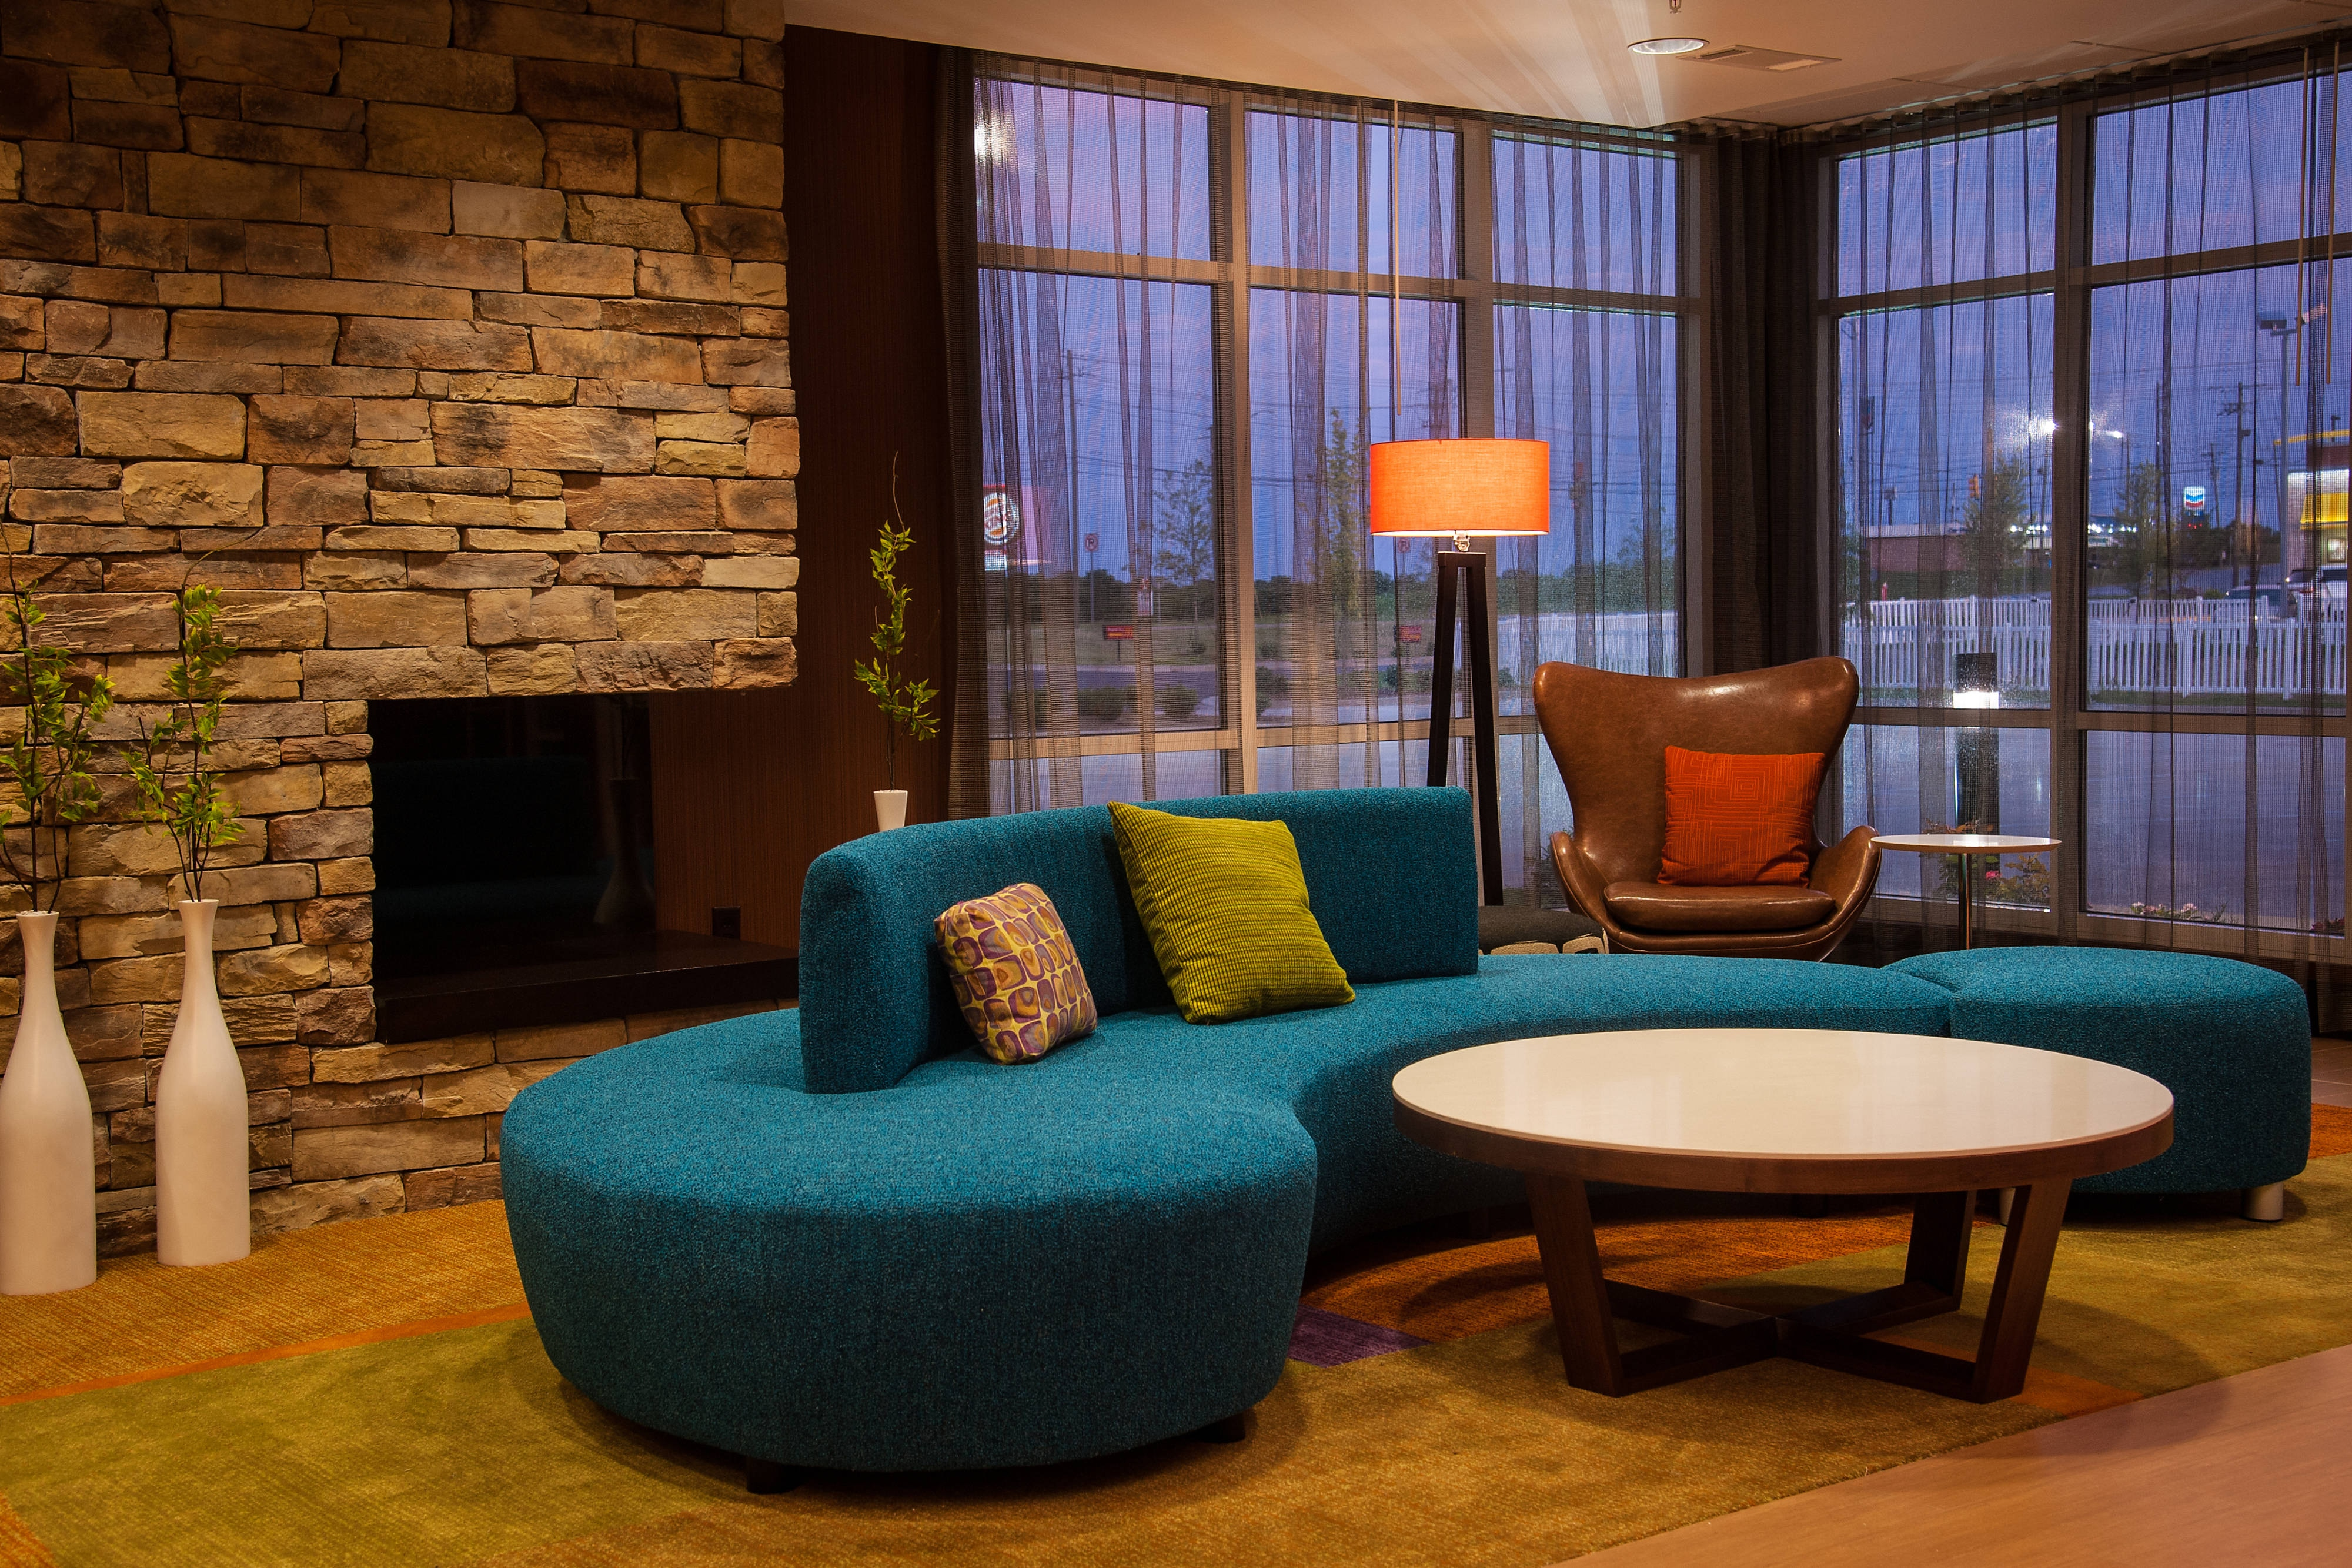 Fairfield Inn & Suites by Marriott Montgomery